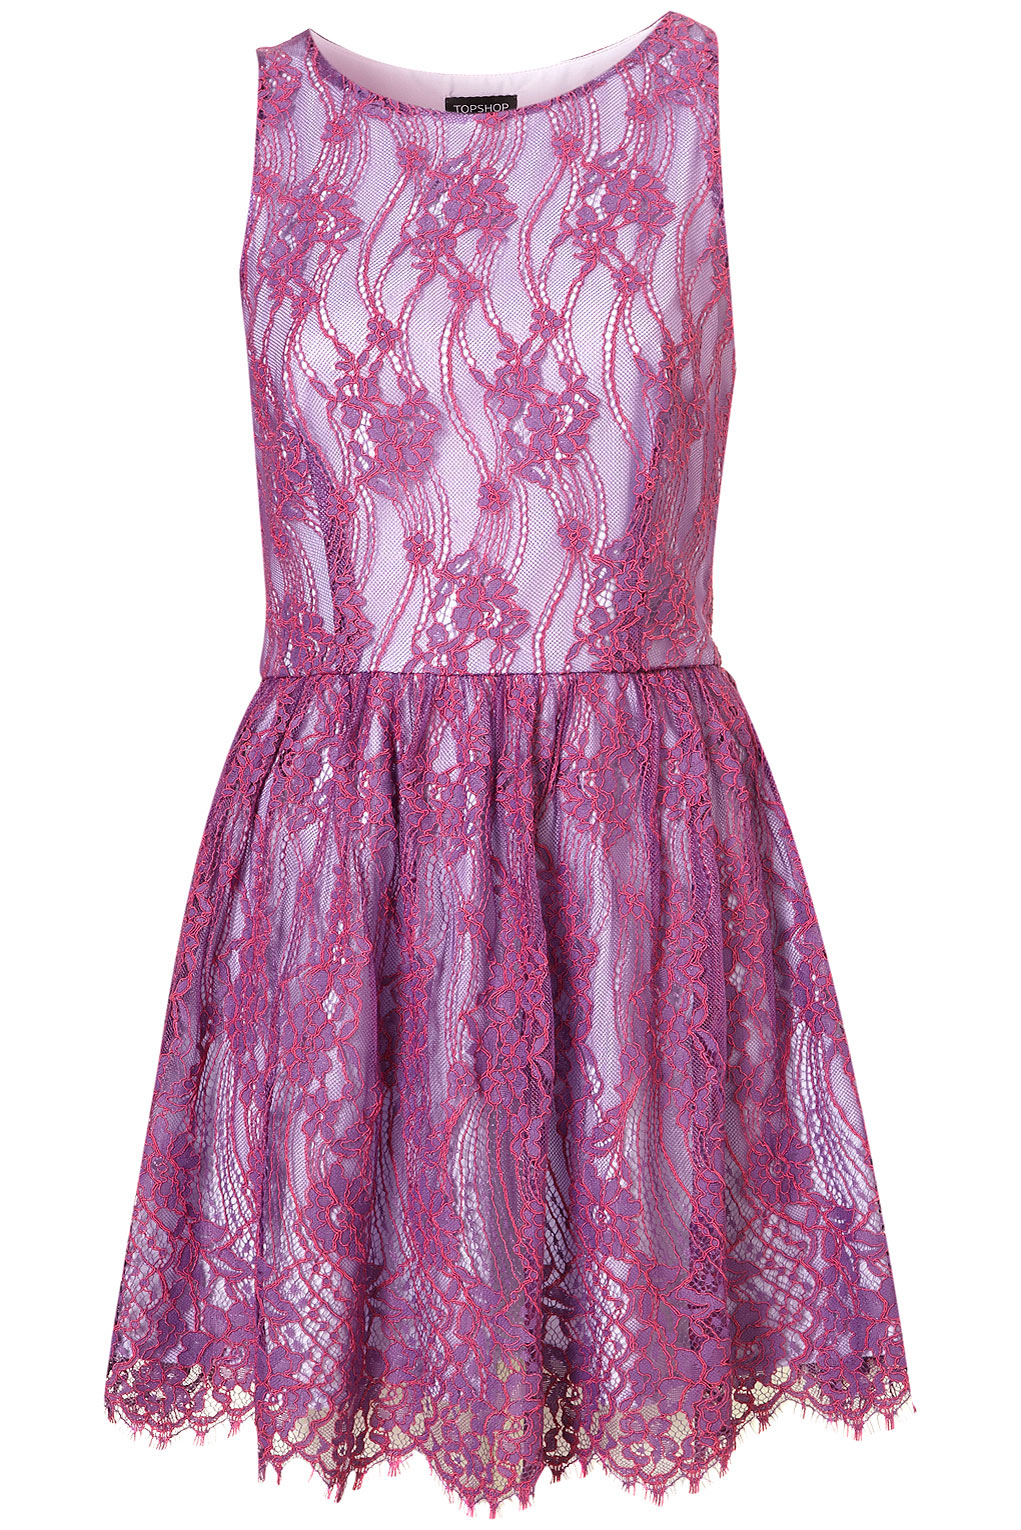 Lyst Topshop Lace Skater Dress In Purple